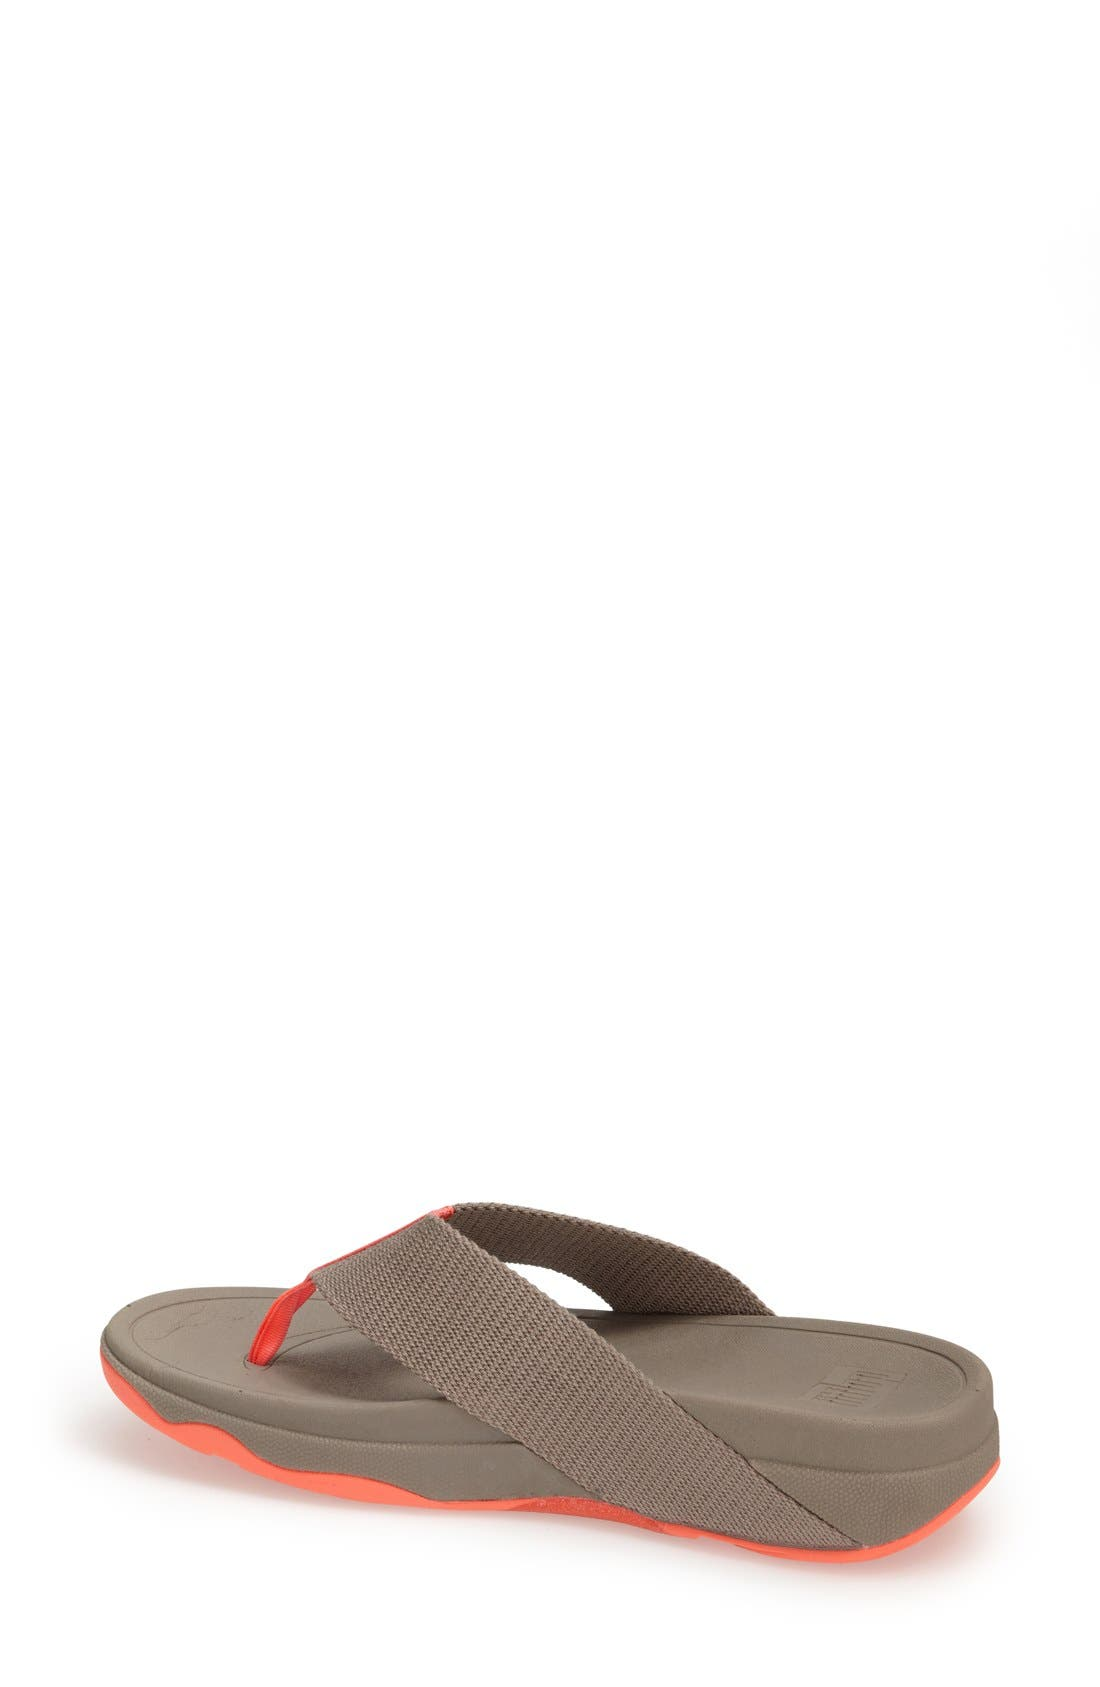 'Surfa' Thong Sandal,                             Alternate thumbnail 12, color,